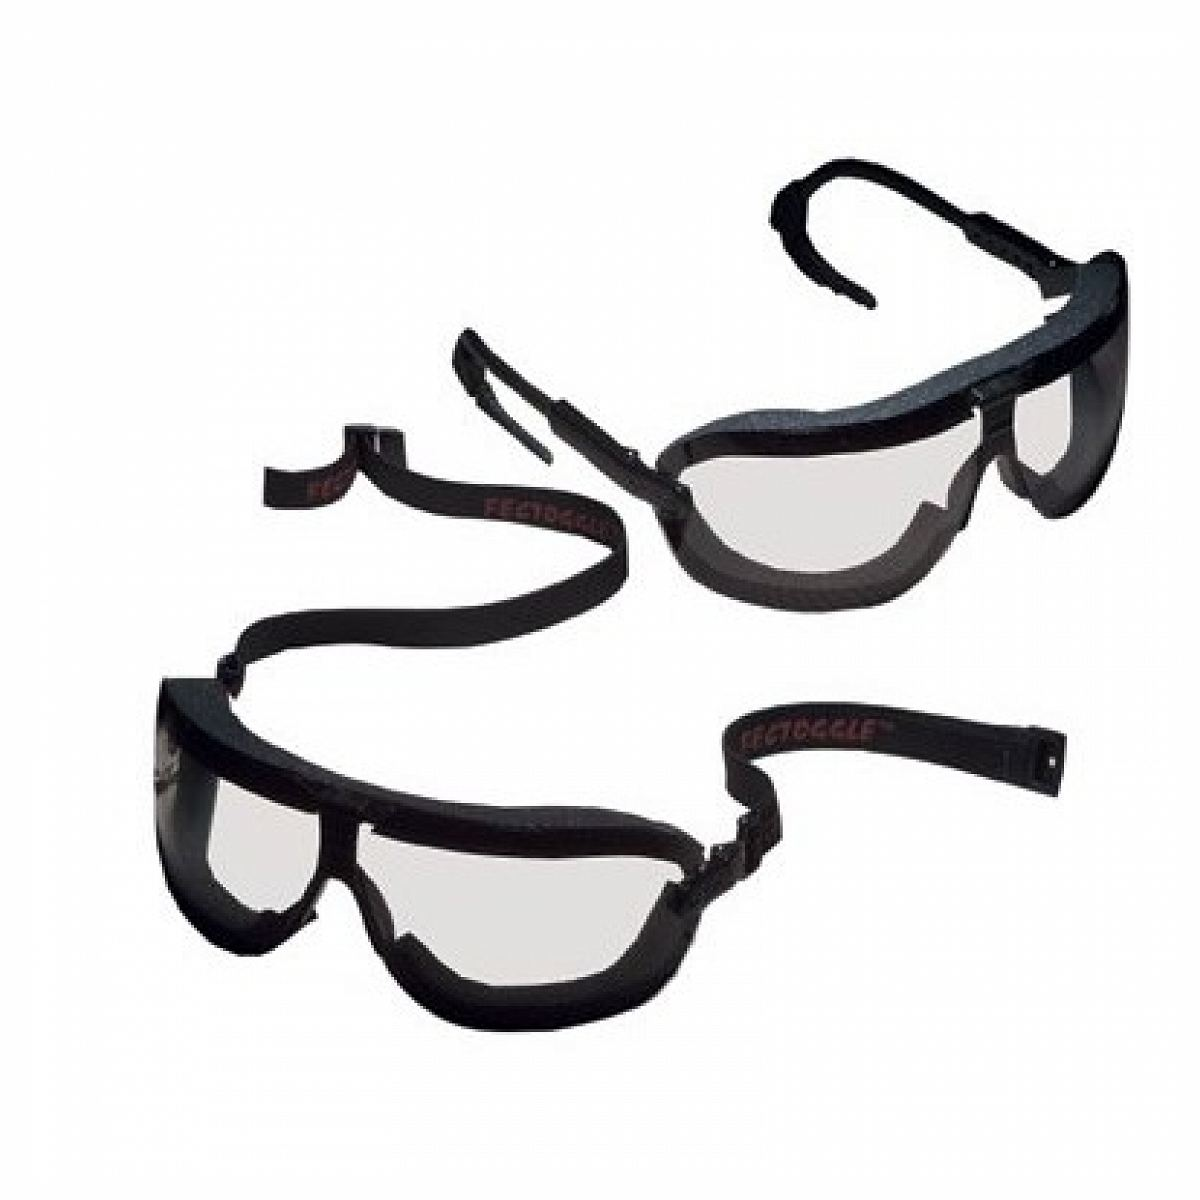 3M+ Medium Fectoggles+ Dust And Impact Goggles With Black Adjustable Temple Foam Lined Frame And Clear DX+ Anti-Fog, Hard Coat L